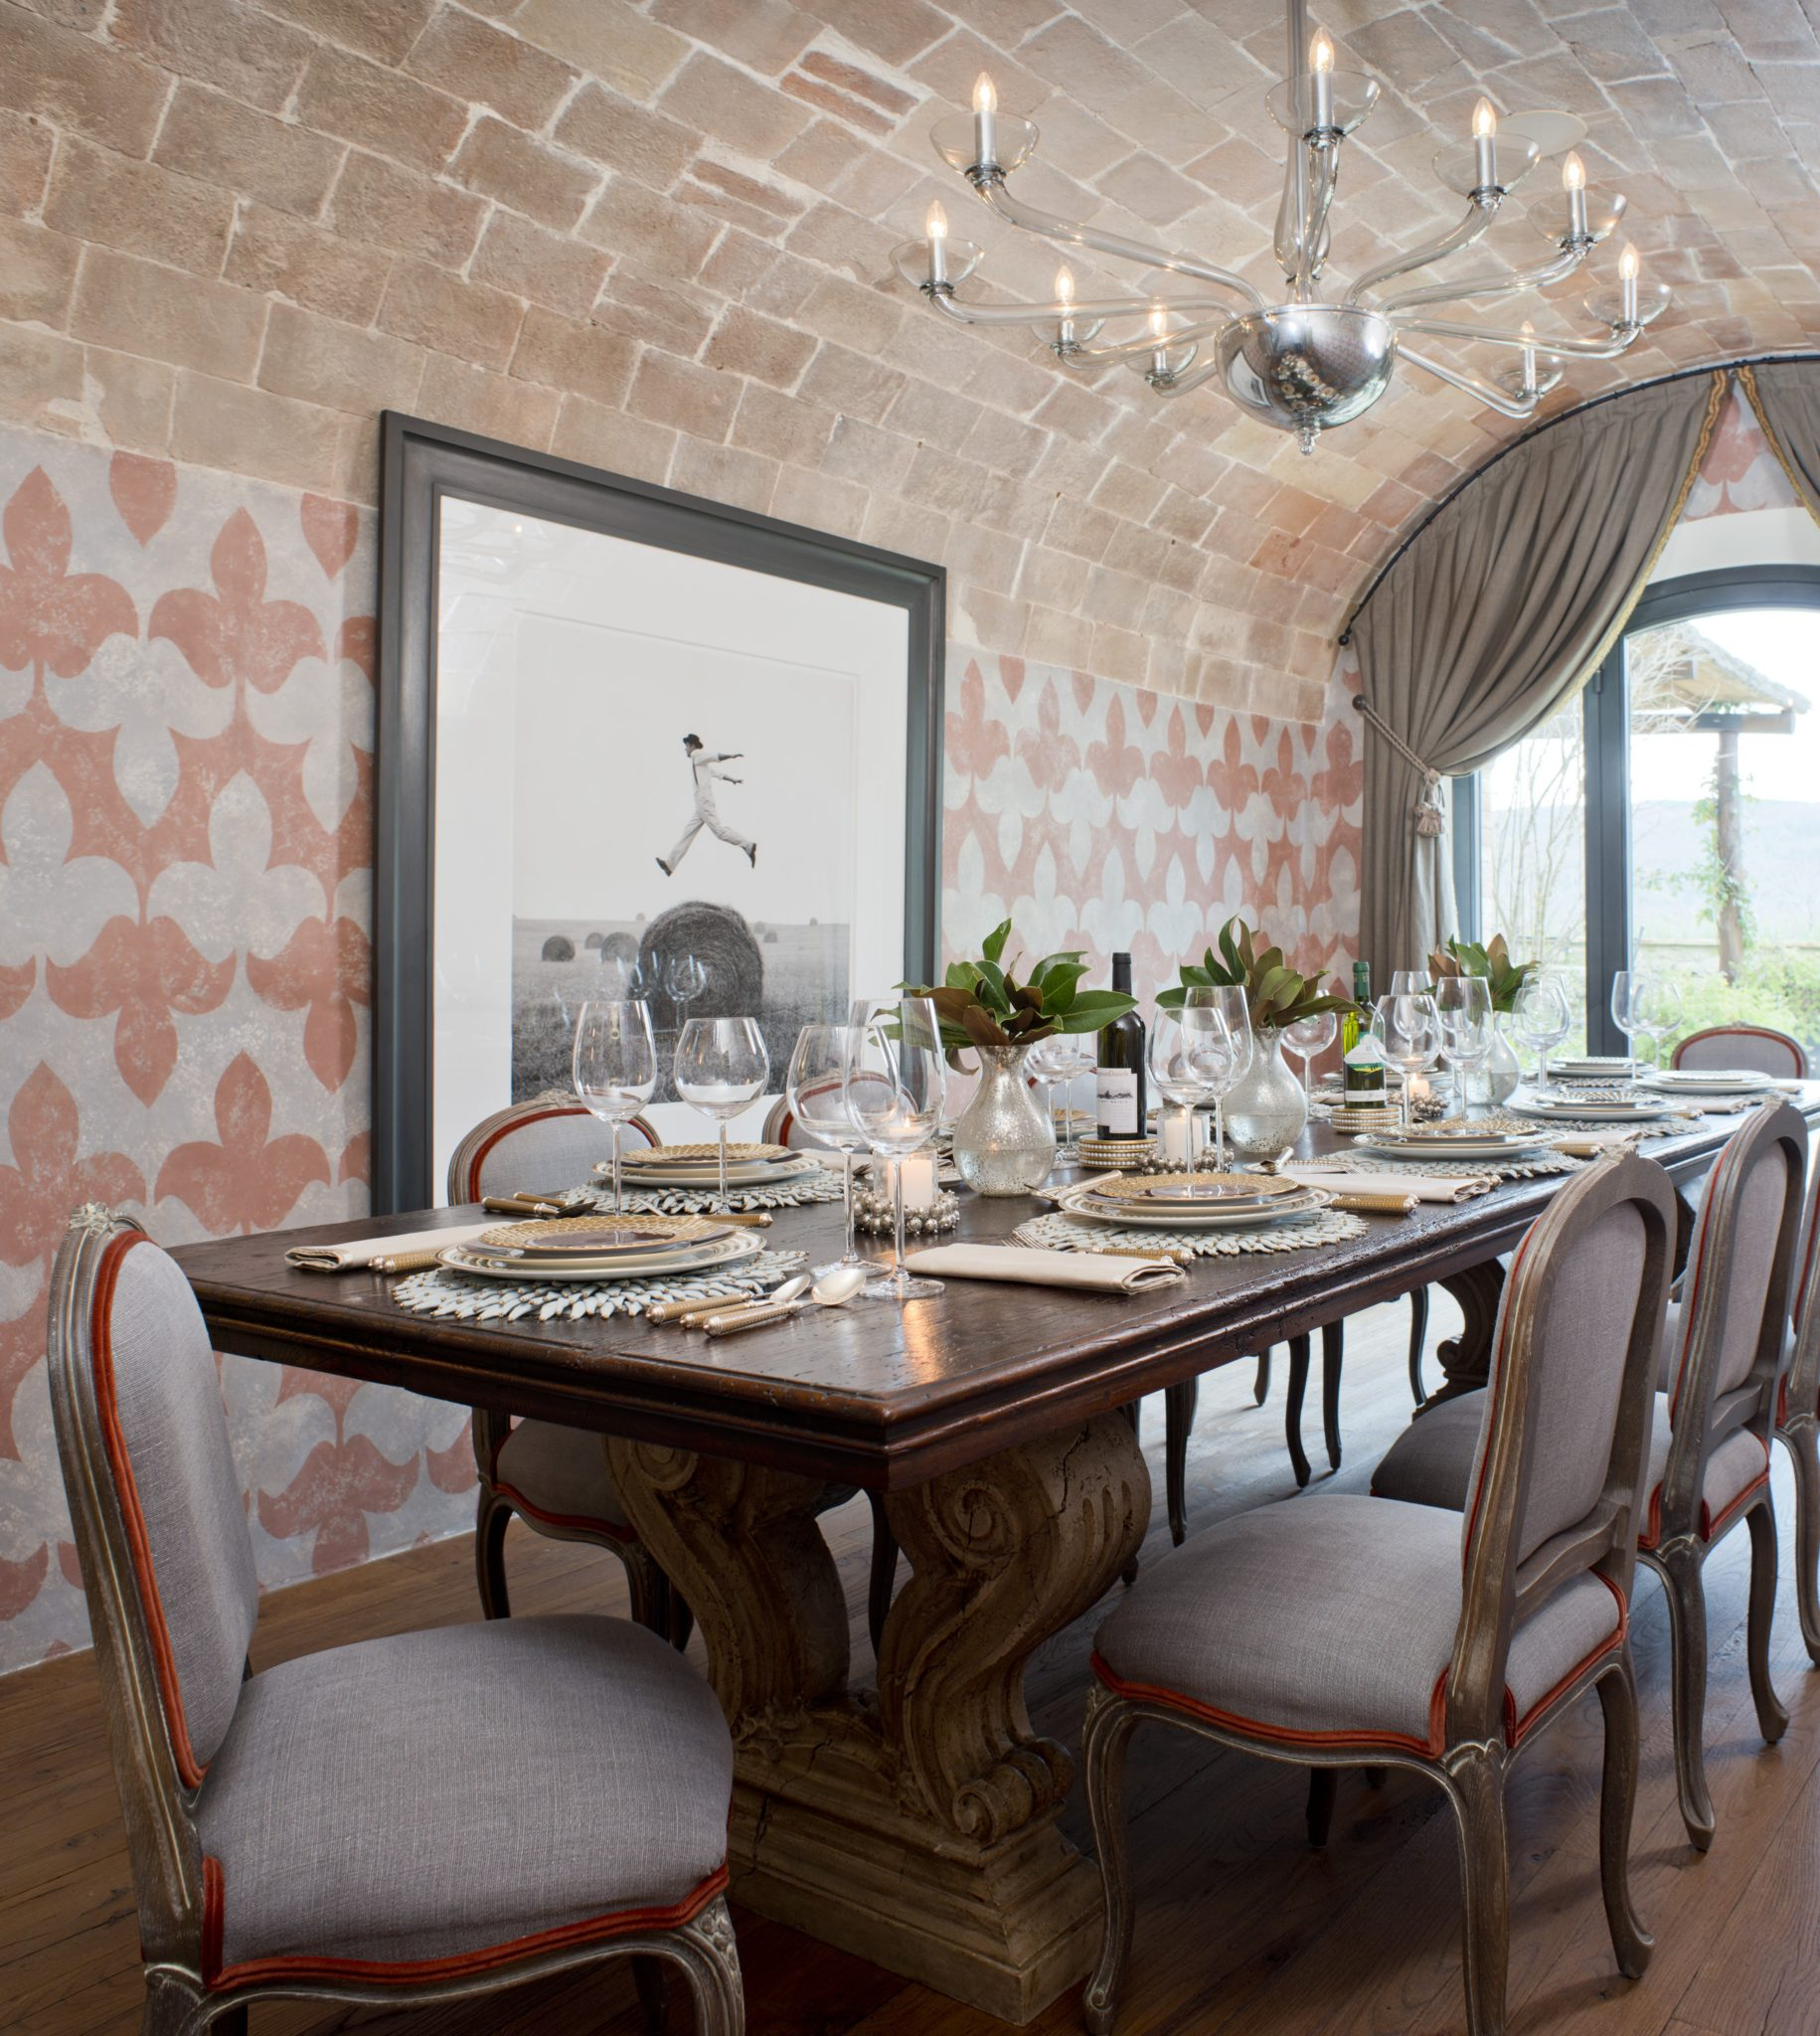 Elegant dining made simple. Rich, detailed dark wood touches mixed with pastels by J Banks Design